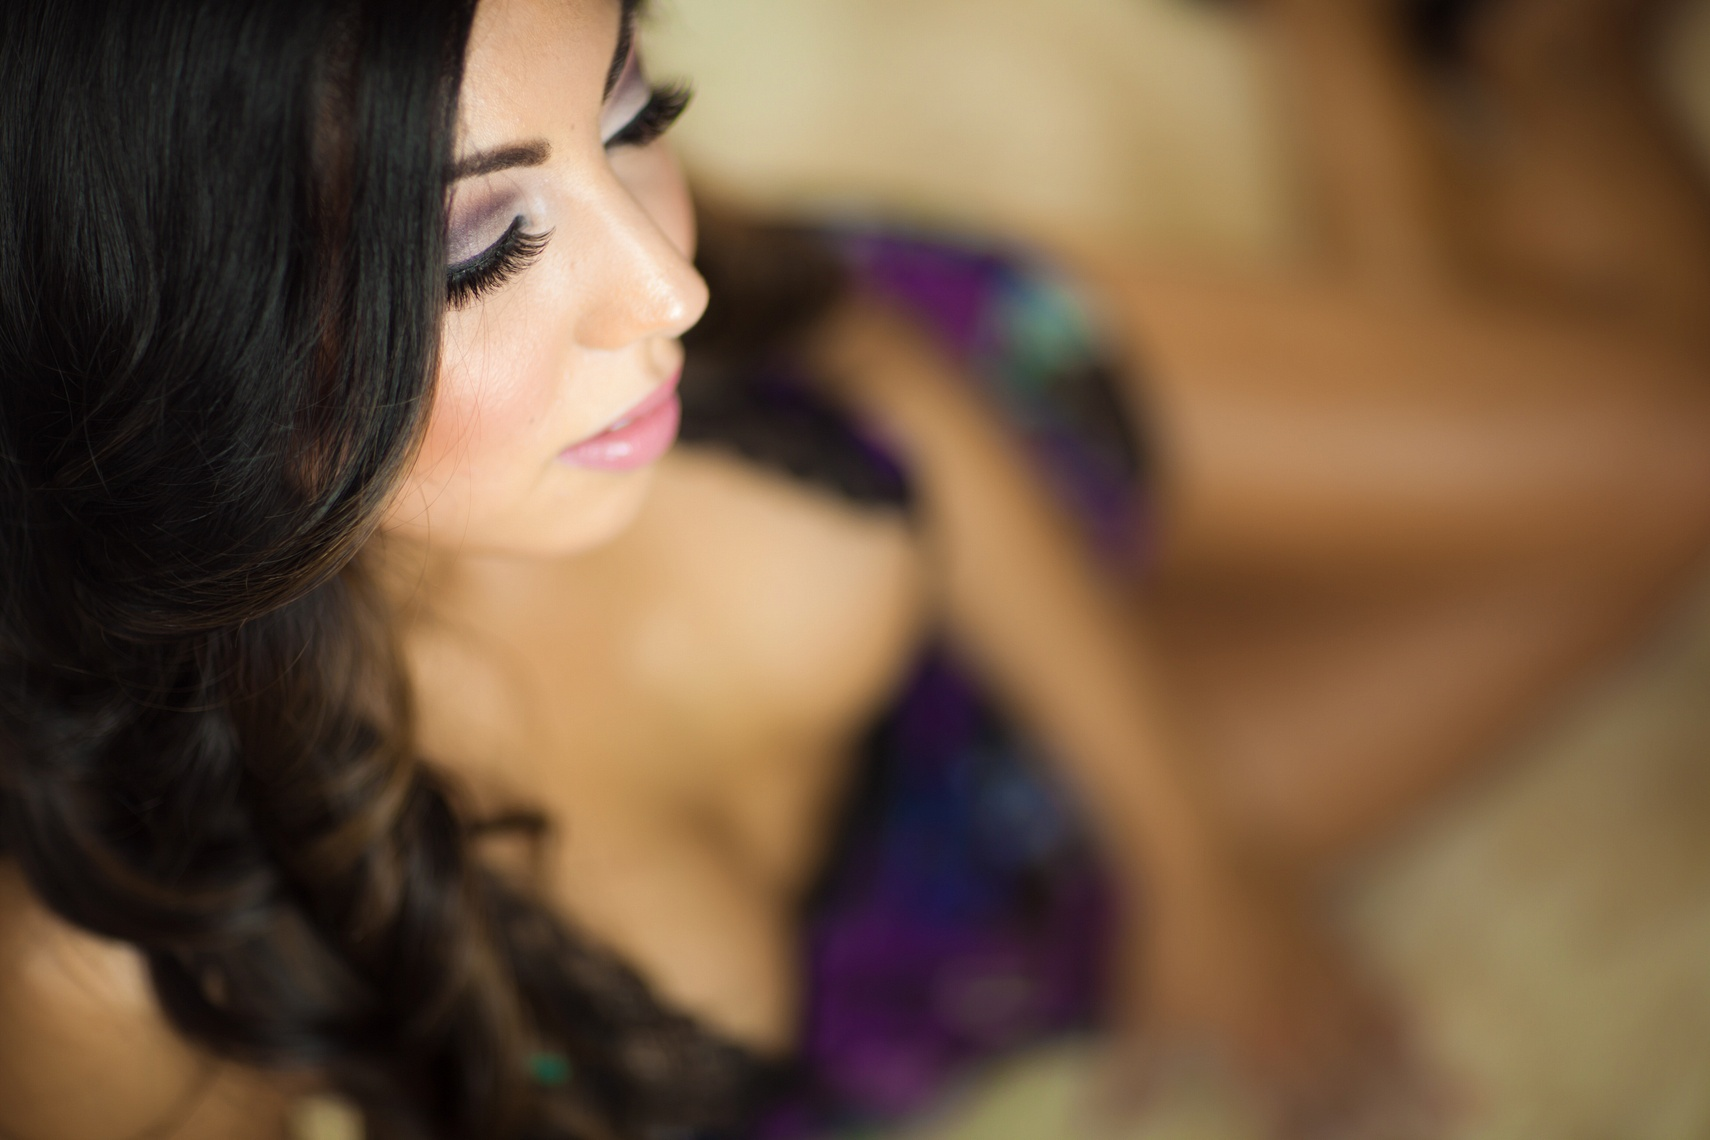 020Boudoirforwwebsite